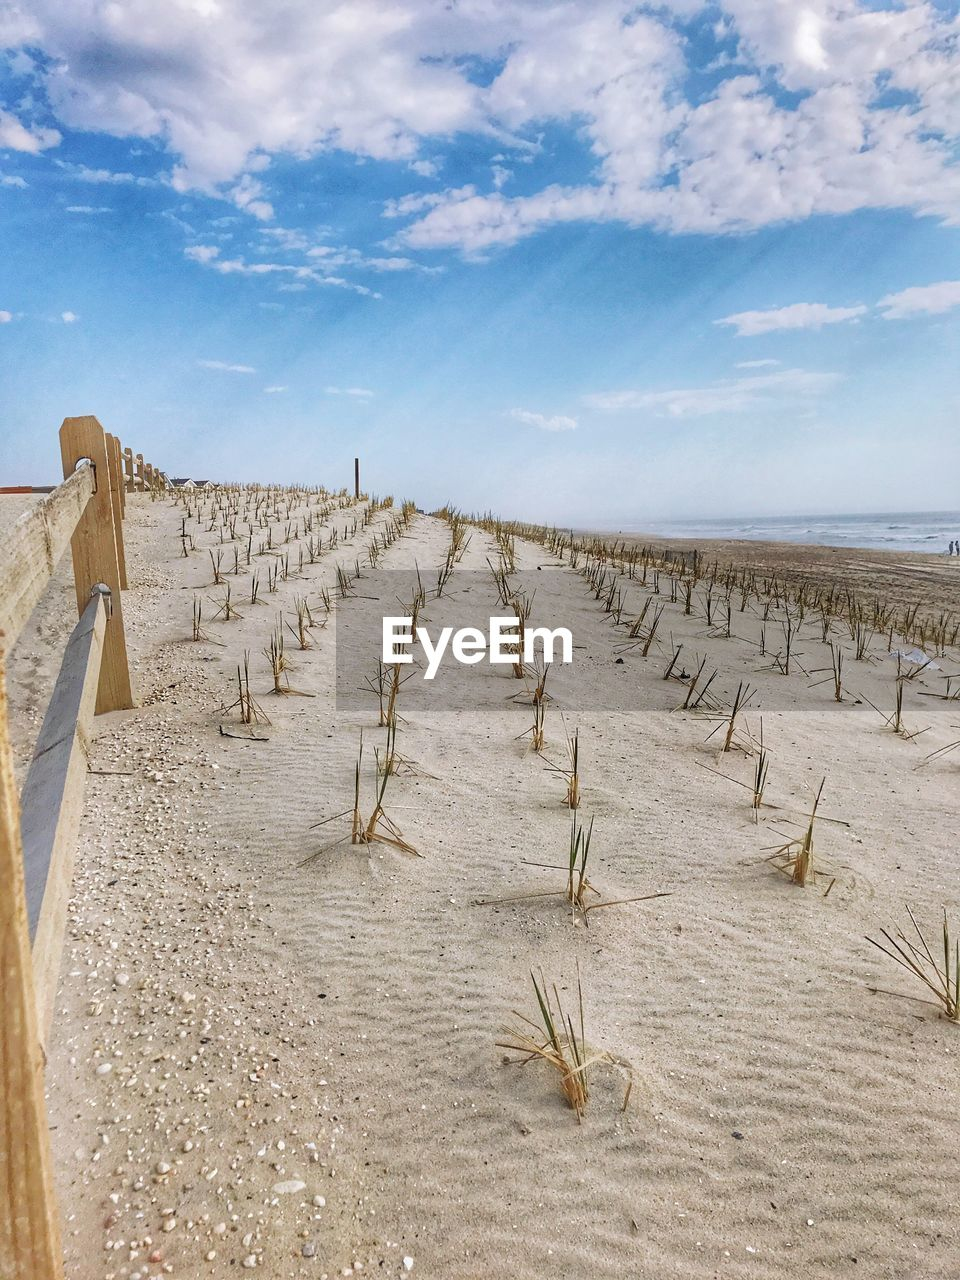 sky, cloud - sky, land, scenics - nature, beauty in nature, tranquility, tranquil scene, beach, nature, day, sea, sand, no people, horizon, landscape, water, non-urban scene, horizon over water, outdoors, wooden post, arid climate